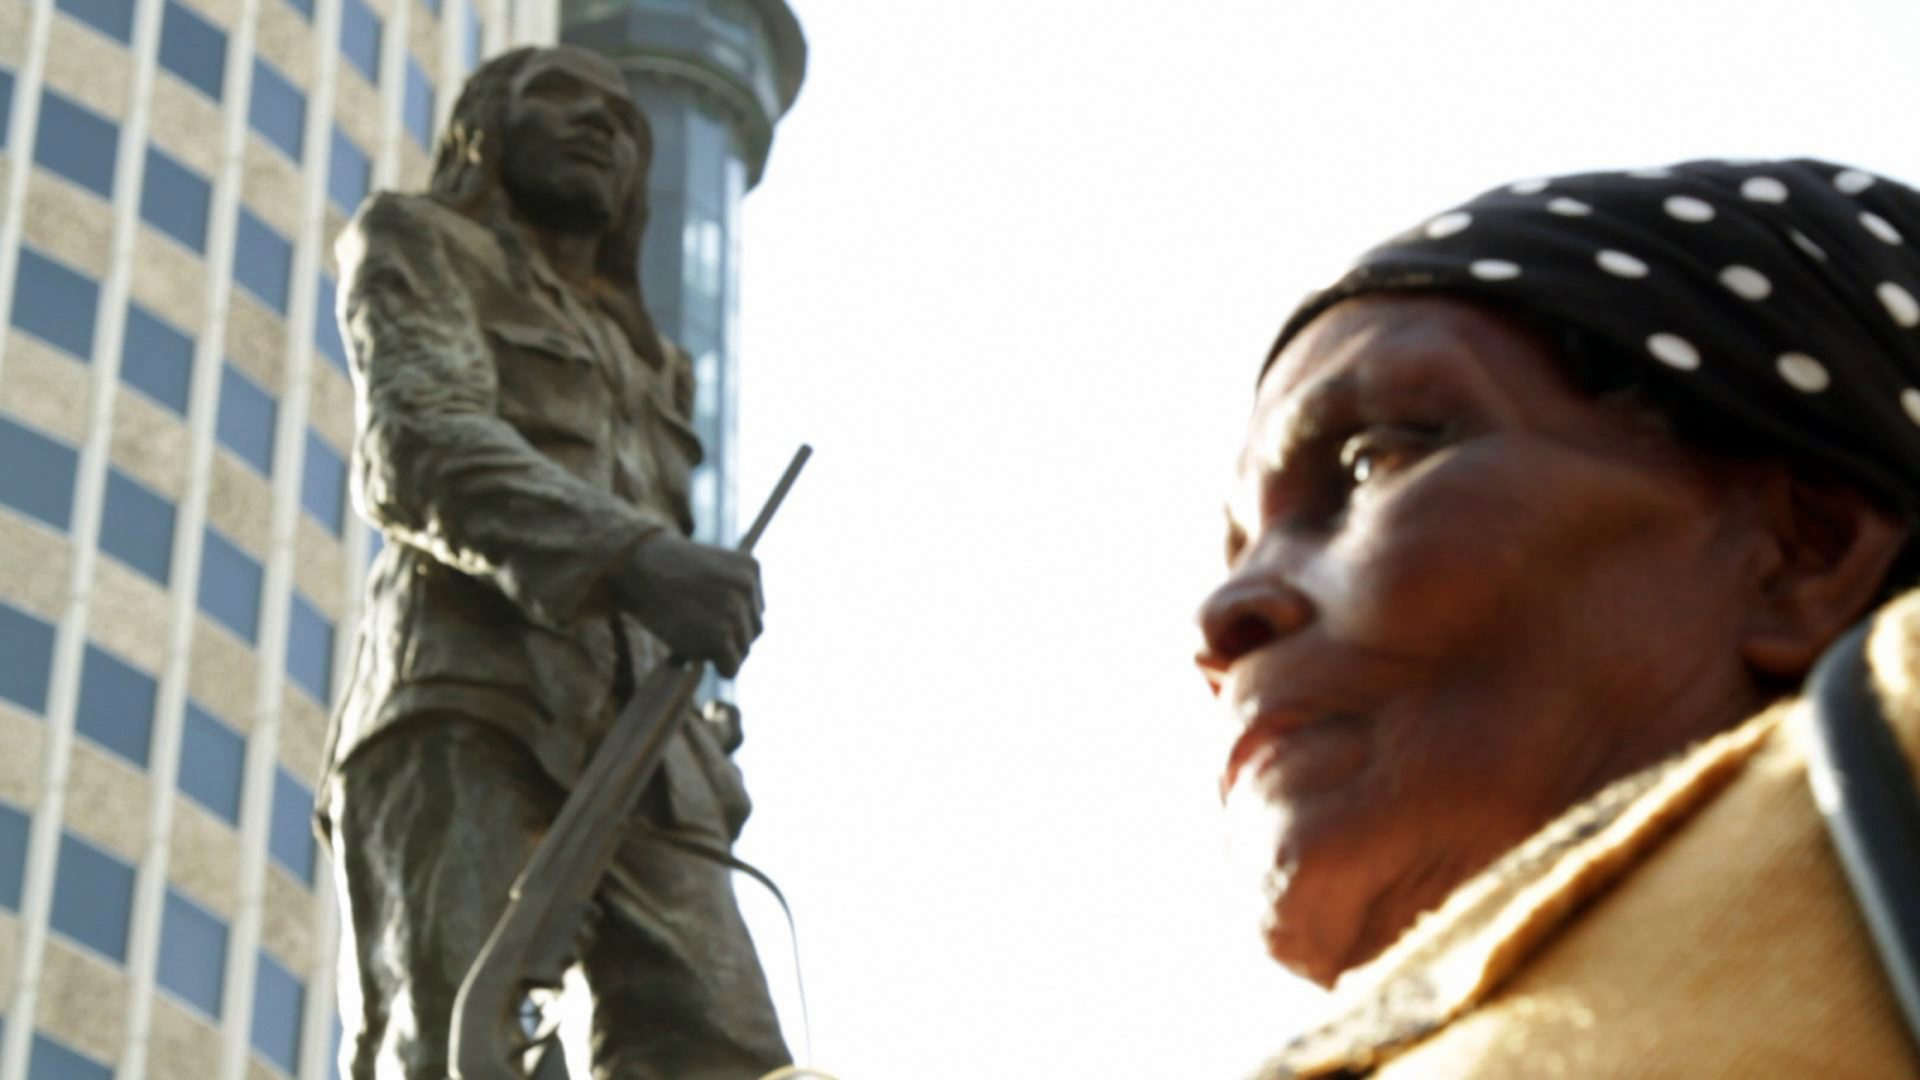 Still from Meena Nanji and Zippy Kimundu's 'Testament' depicting the film's protagonist in front of the statue of Dedan Kimathi, located in Nairobi.